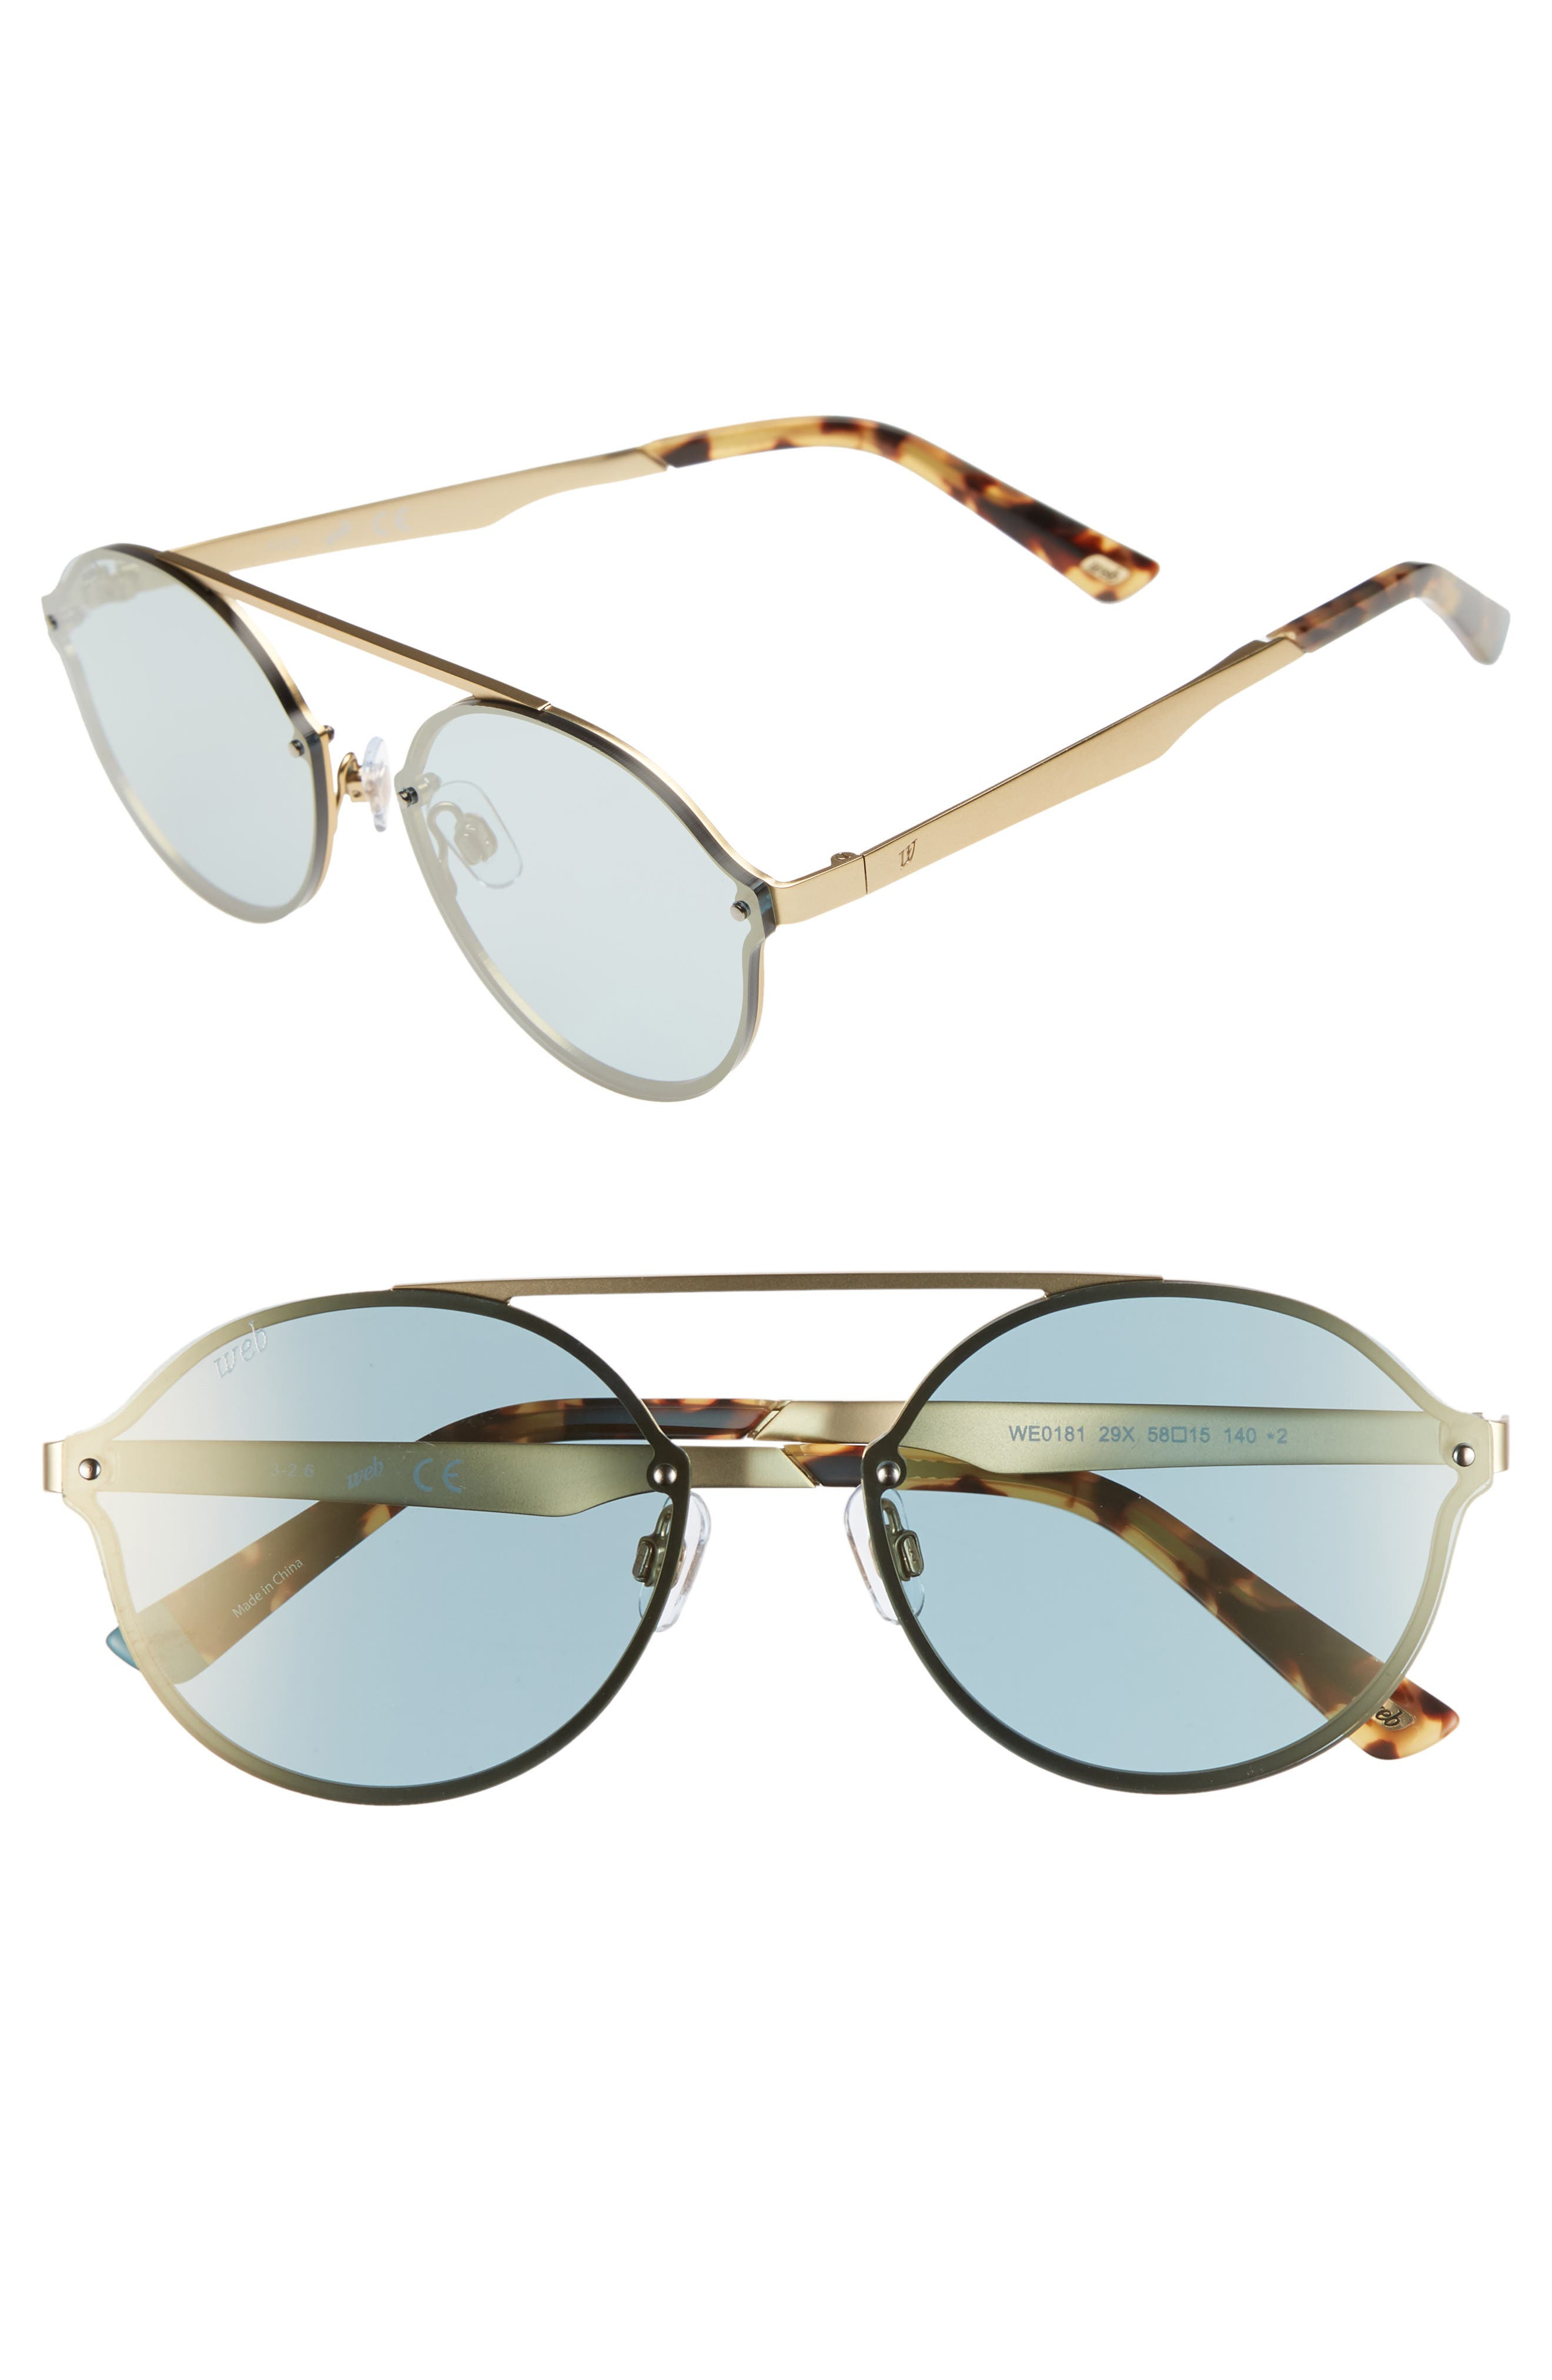 58mm Round Sunglasses,                             Main thumbnail 1, color,                             Gold/ Blue